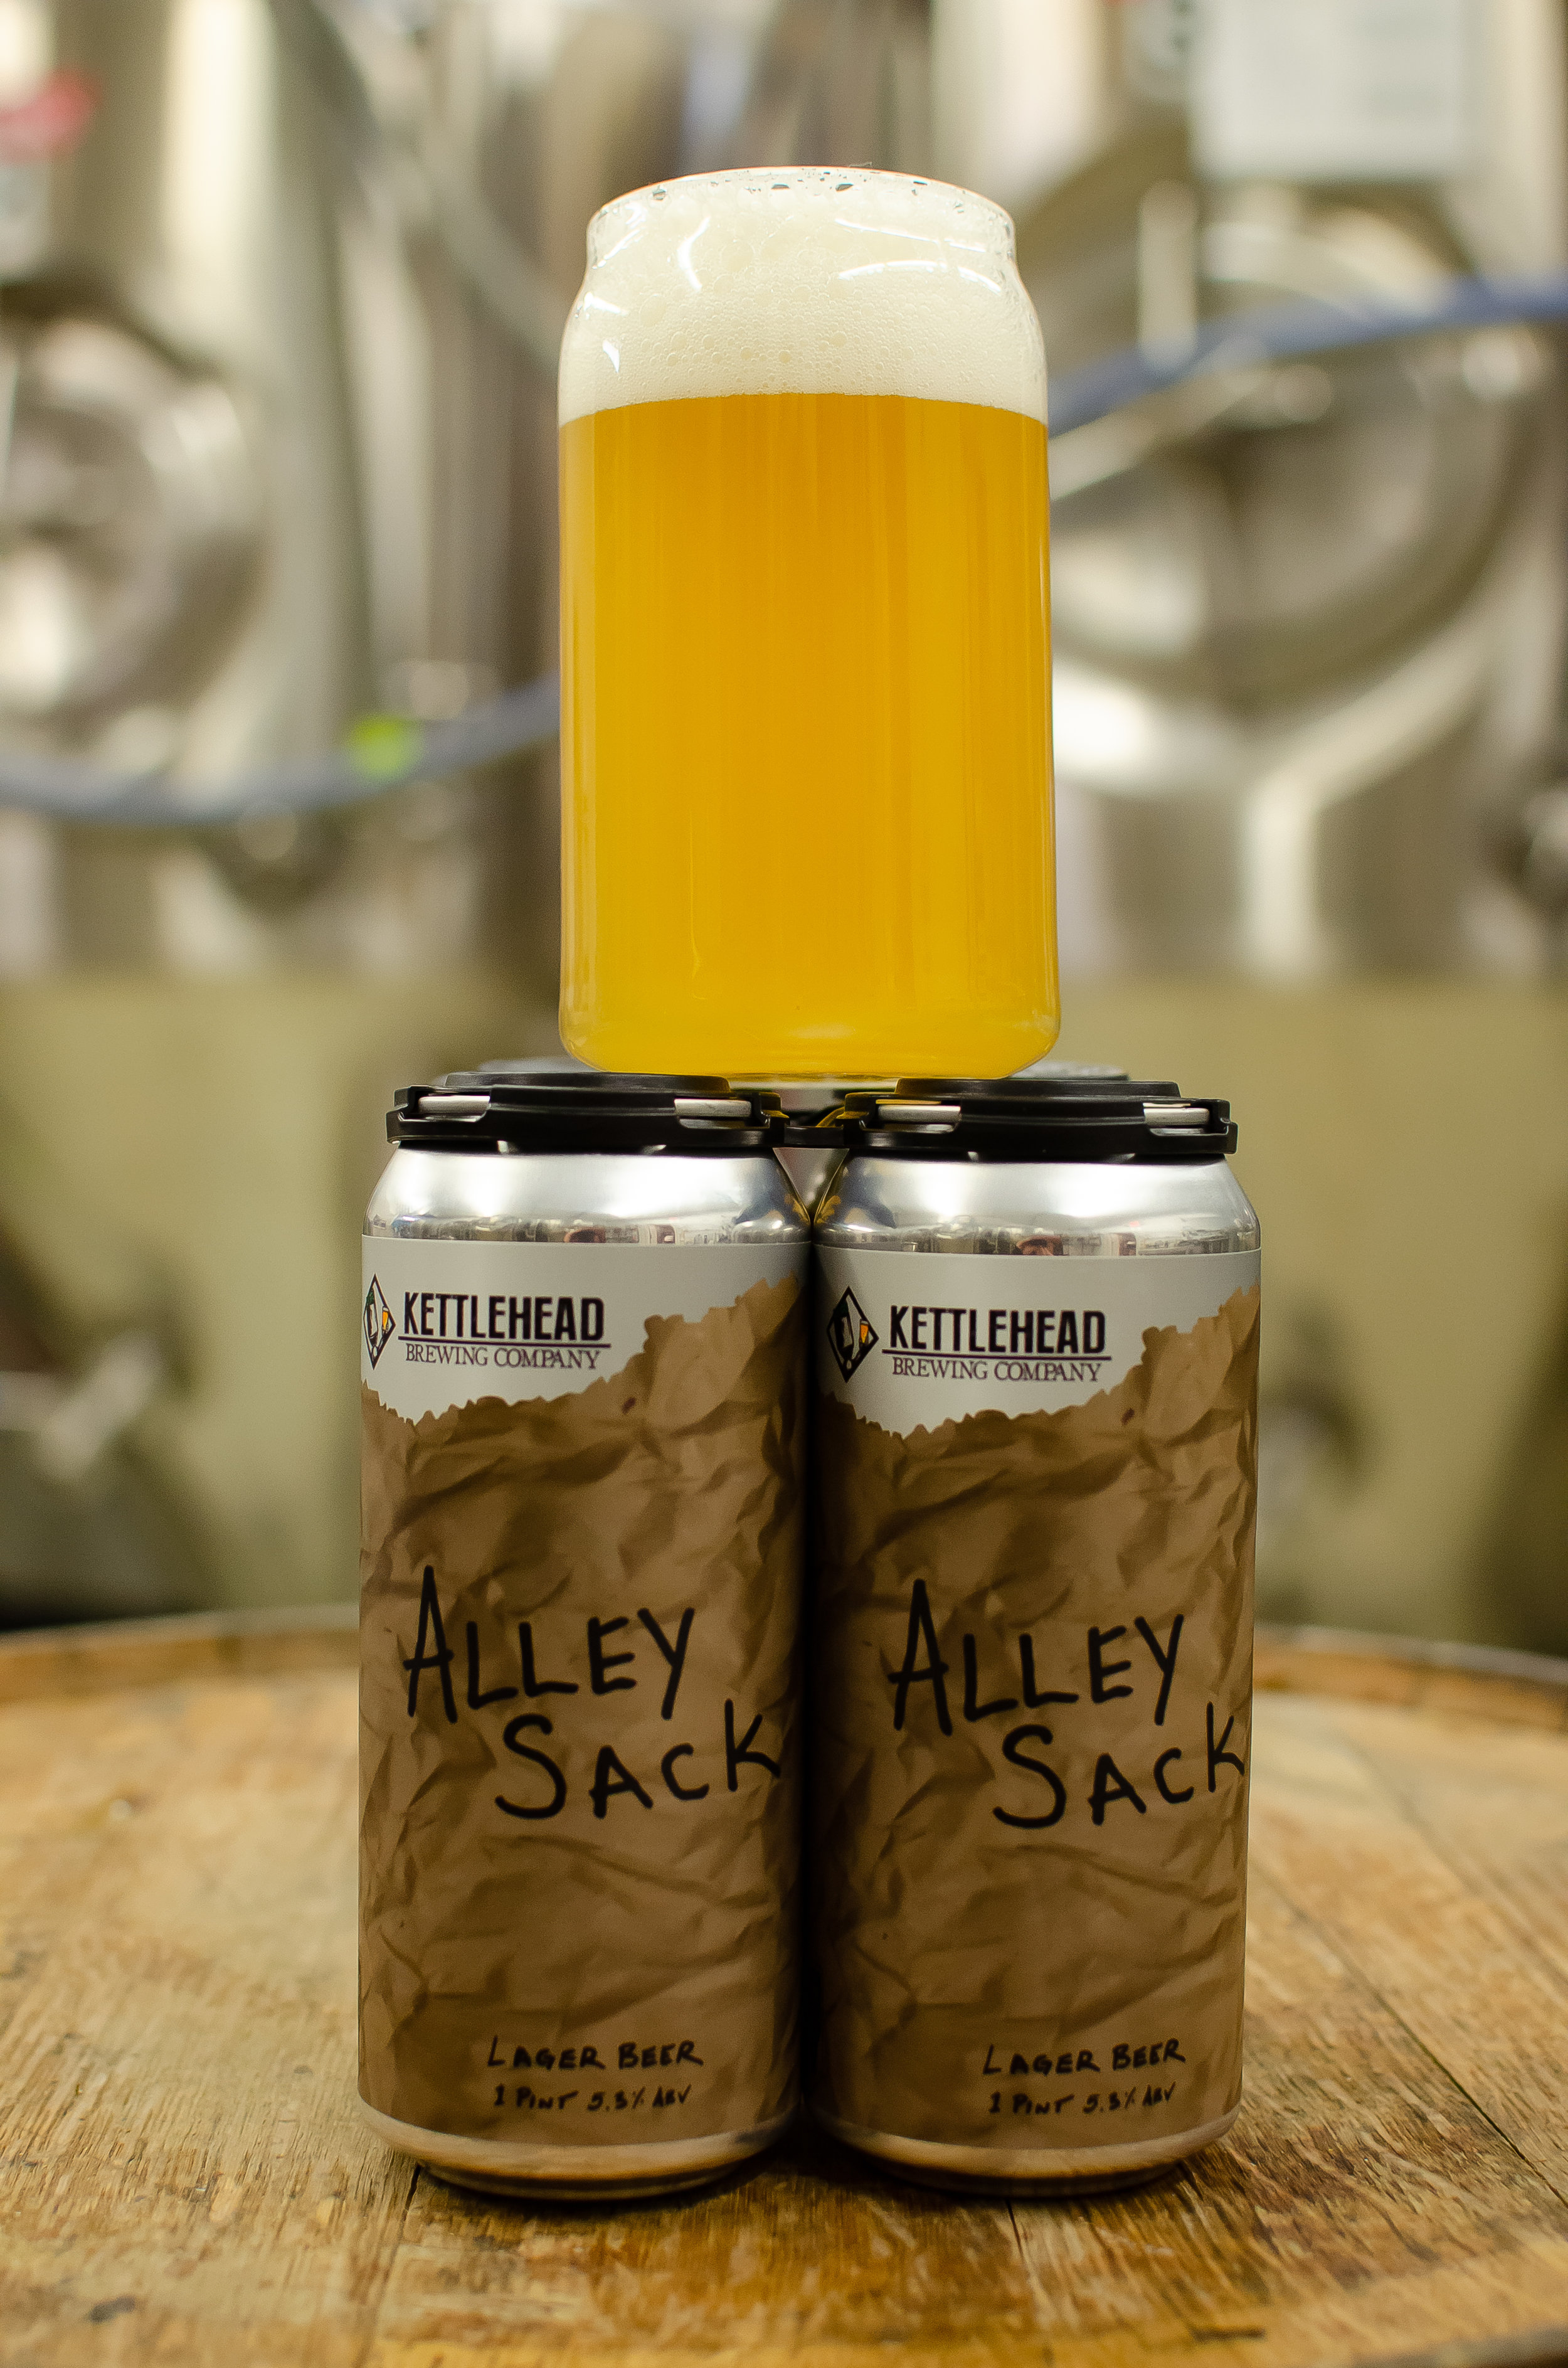 Alley Sack Lager Beer, 5.3% - Designed with high drinkability in mind. this is a light, crisp lager modestly hopped. This could be considered the gateway drug for entry level craft beer enthusiasts.